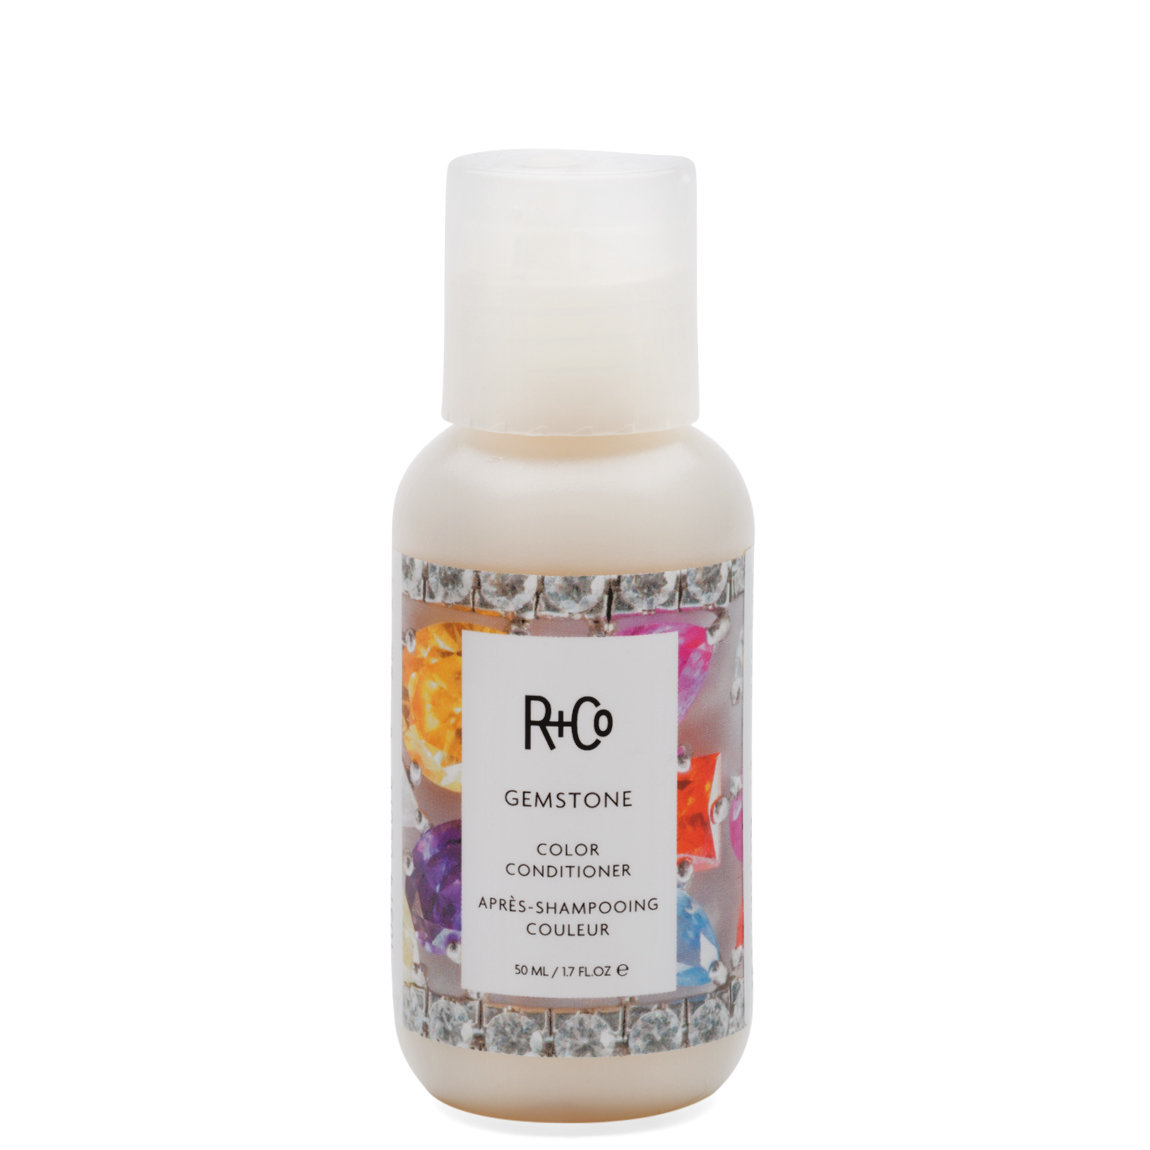 R+Co Gemstone Color Conditioner 1.7 oz alternative view 1 - product swatch.